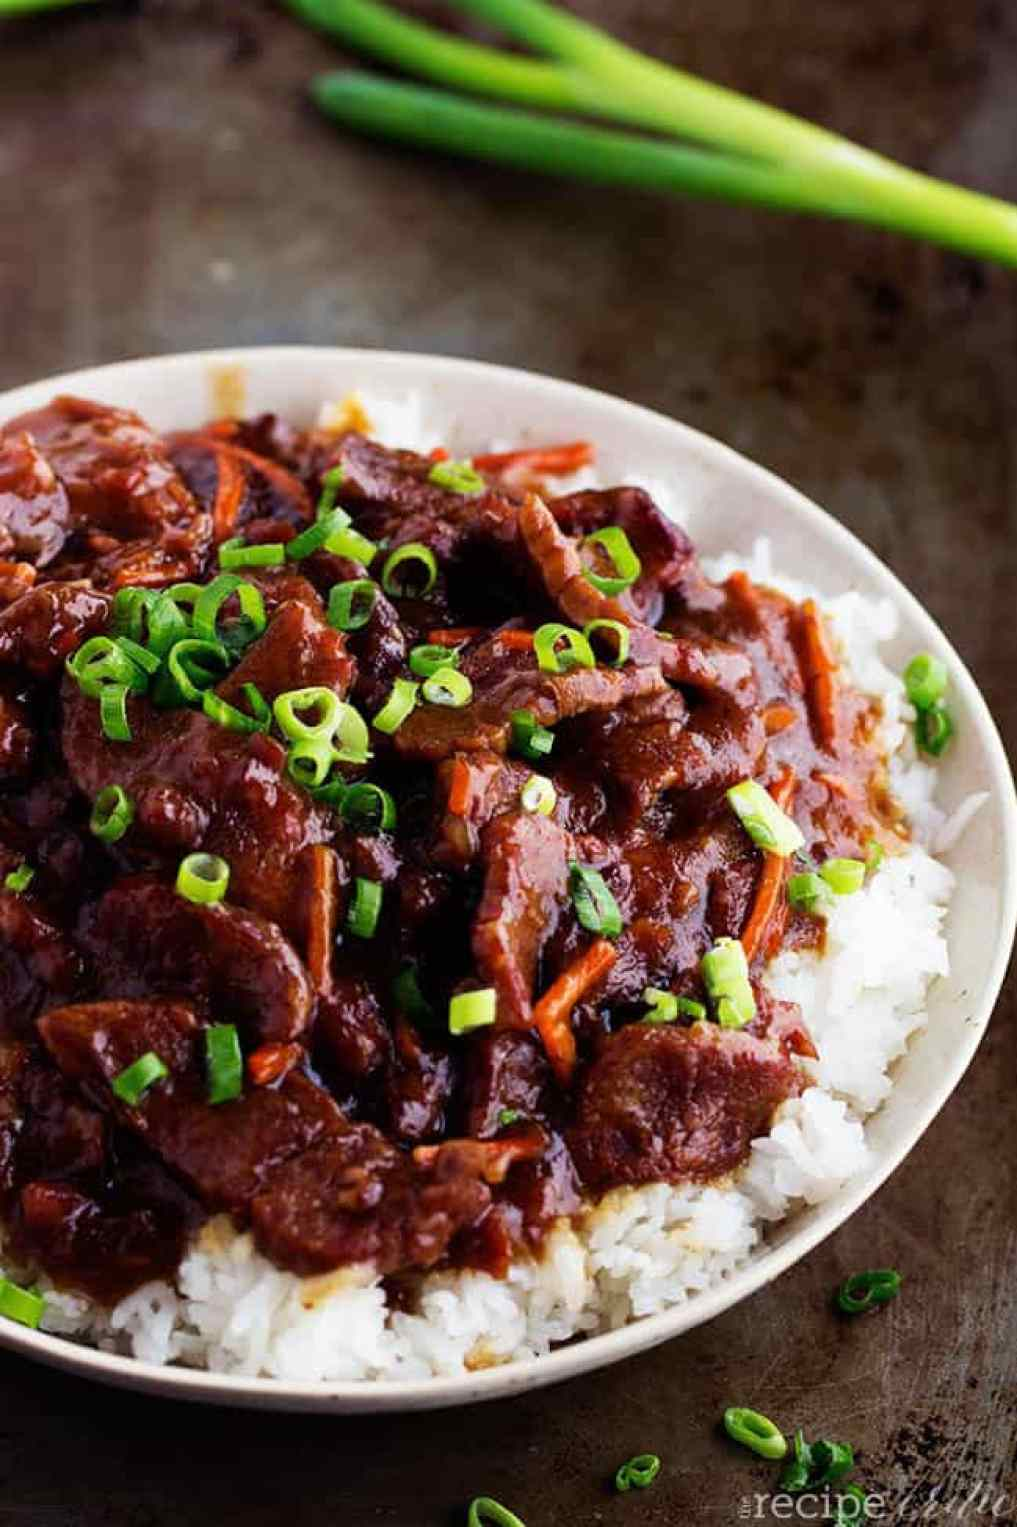 10 Must-Make Crockpot Recipes For Beef